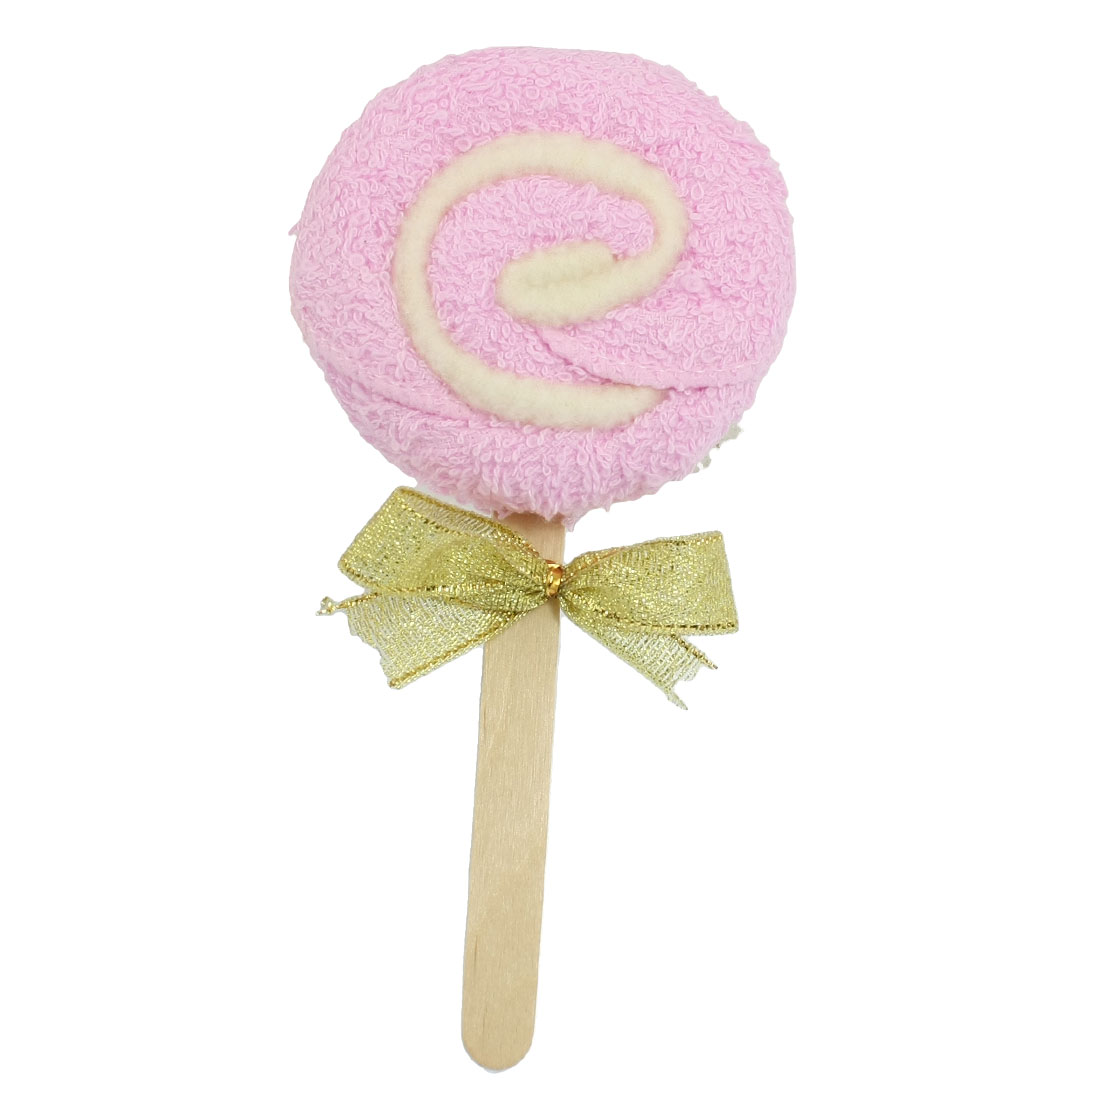 White Pink Lollipop Shaped Towel Party Wedding Gift Decor Favor